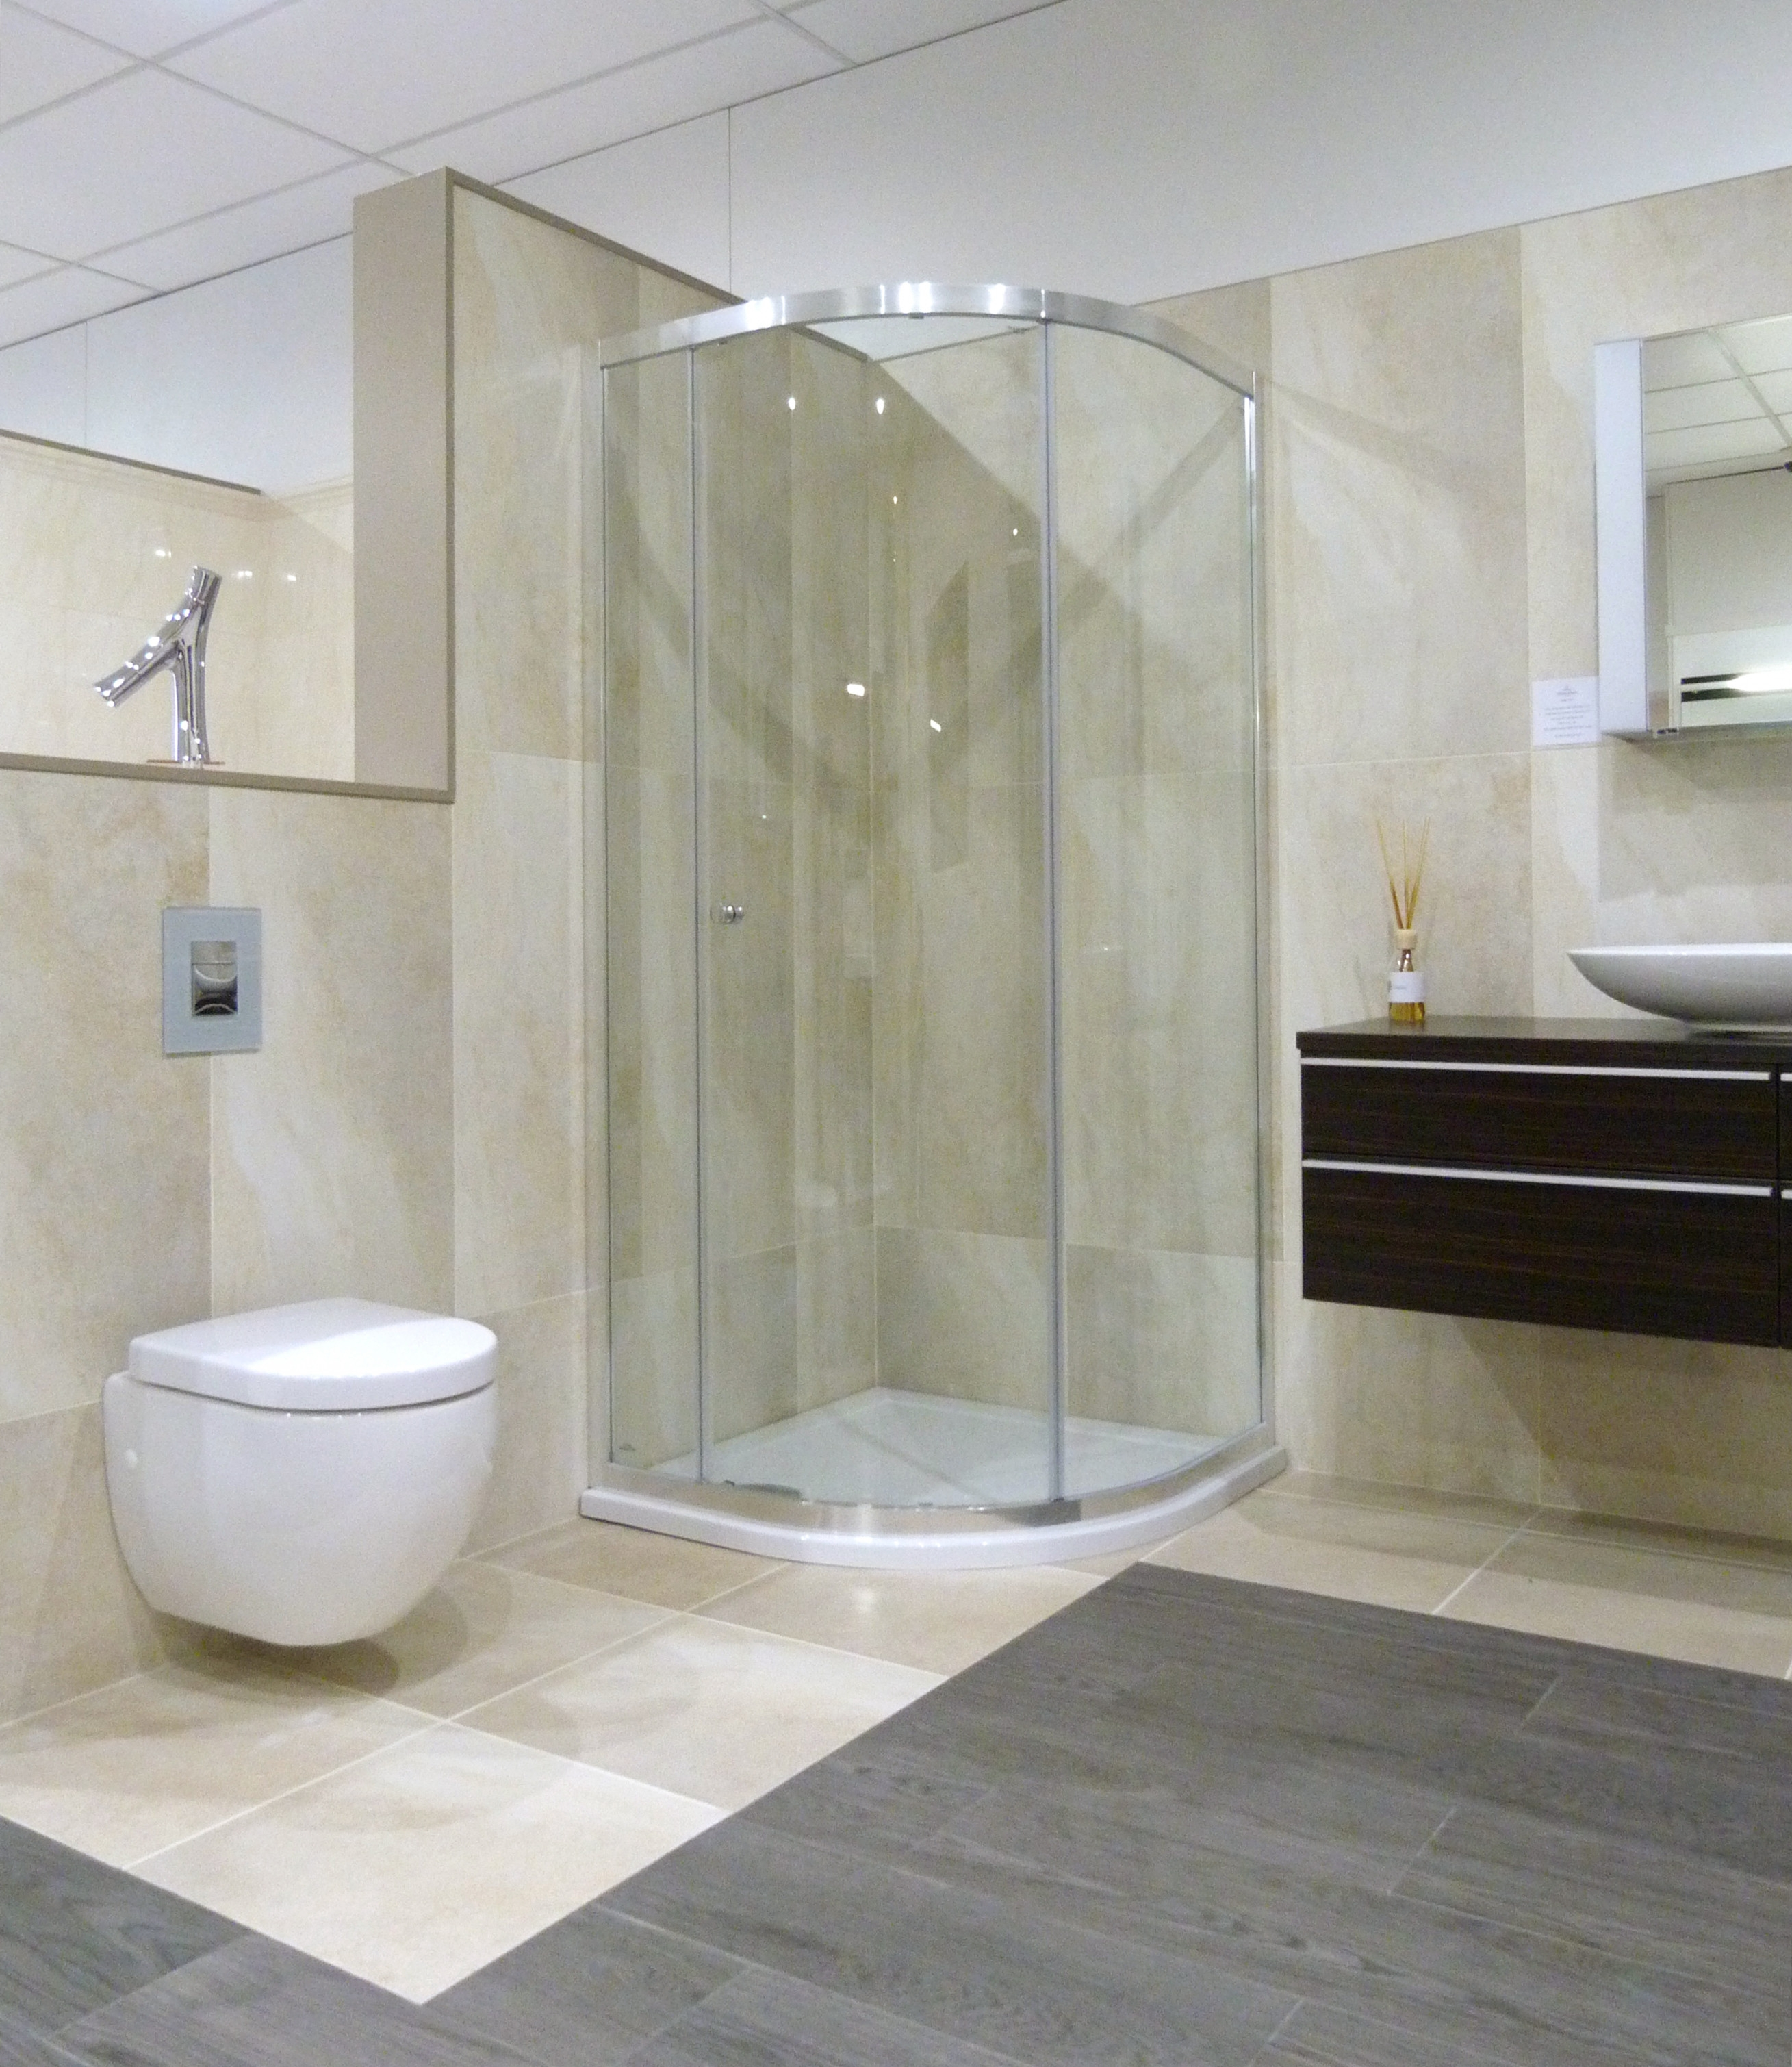 Superbe Bathroom Remodel Showroom Near Me Bathroom Showrooms Mjpergunta